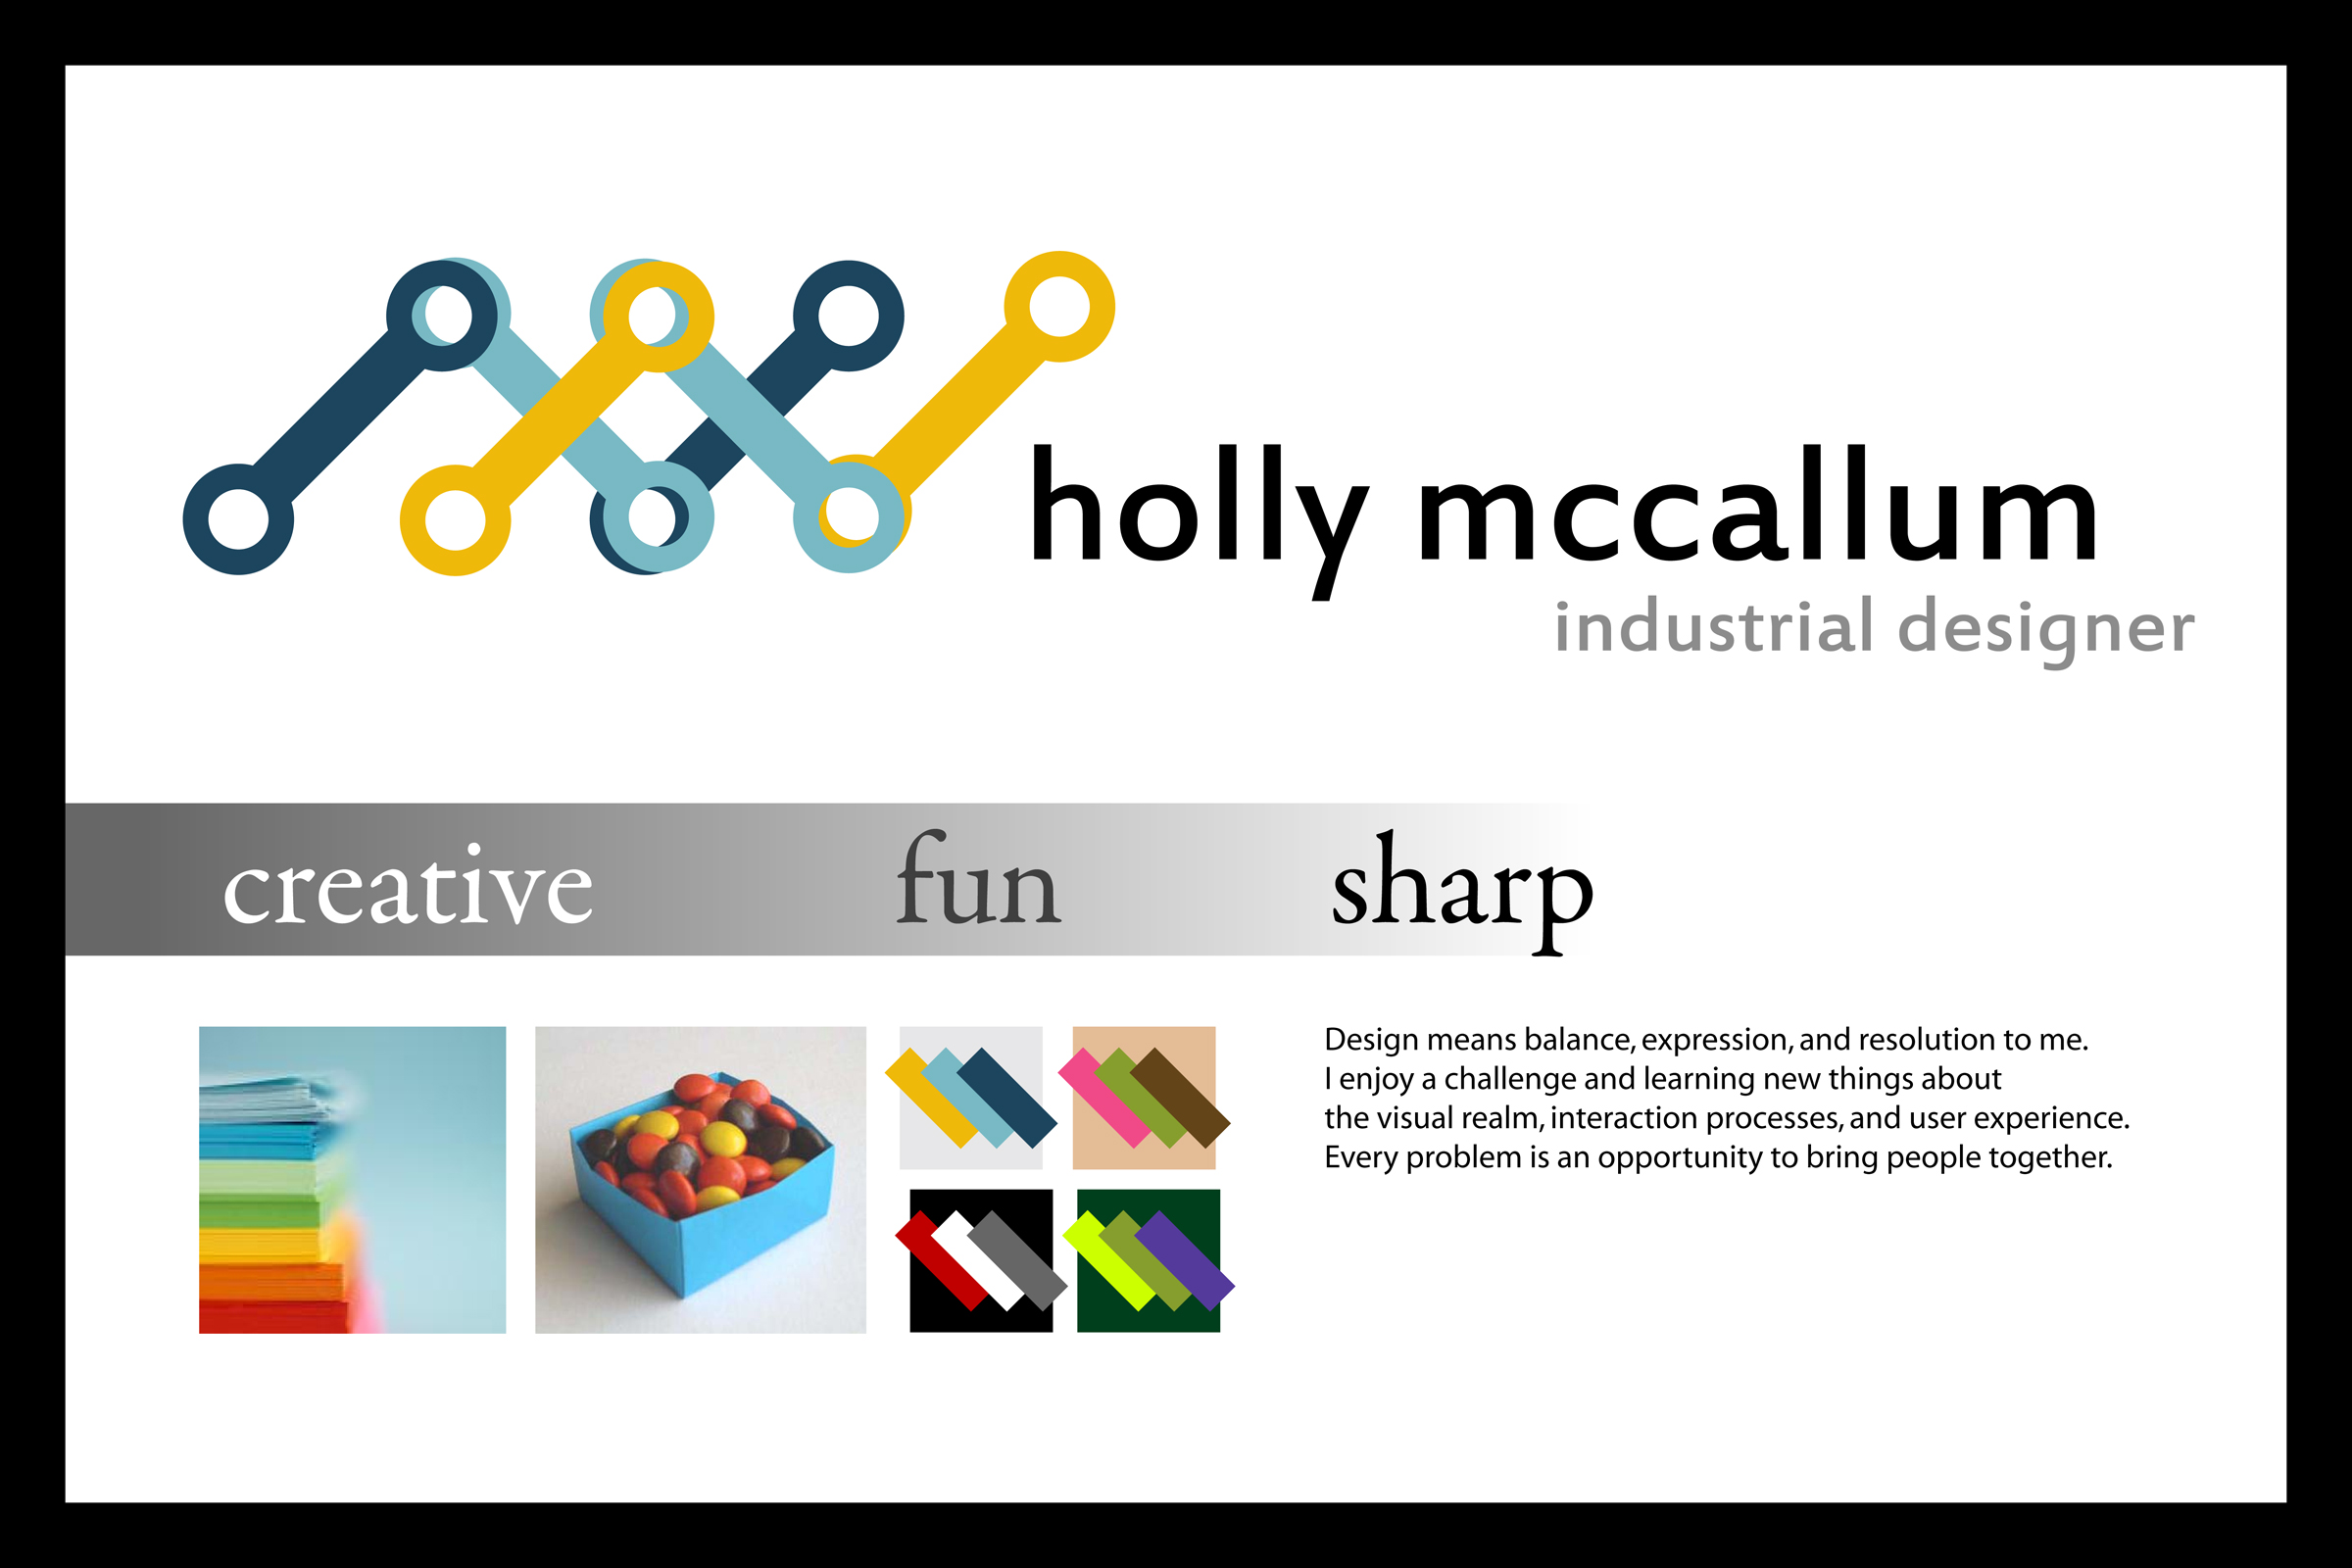 graphic design sample work by holly mccallum at com h favorite qview full size